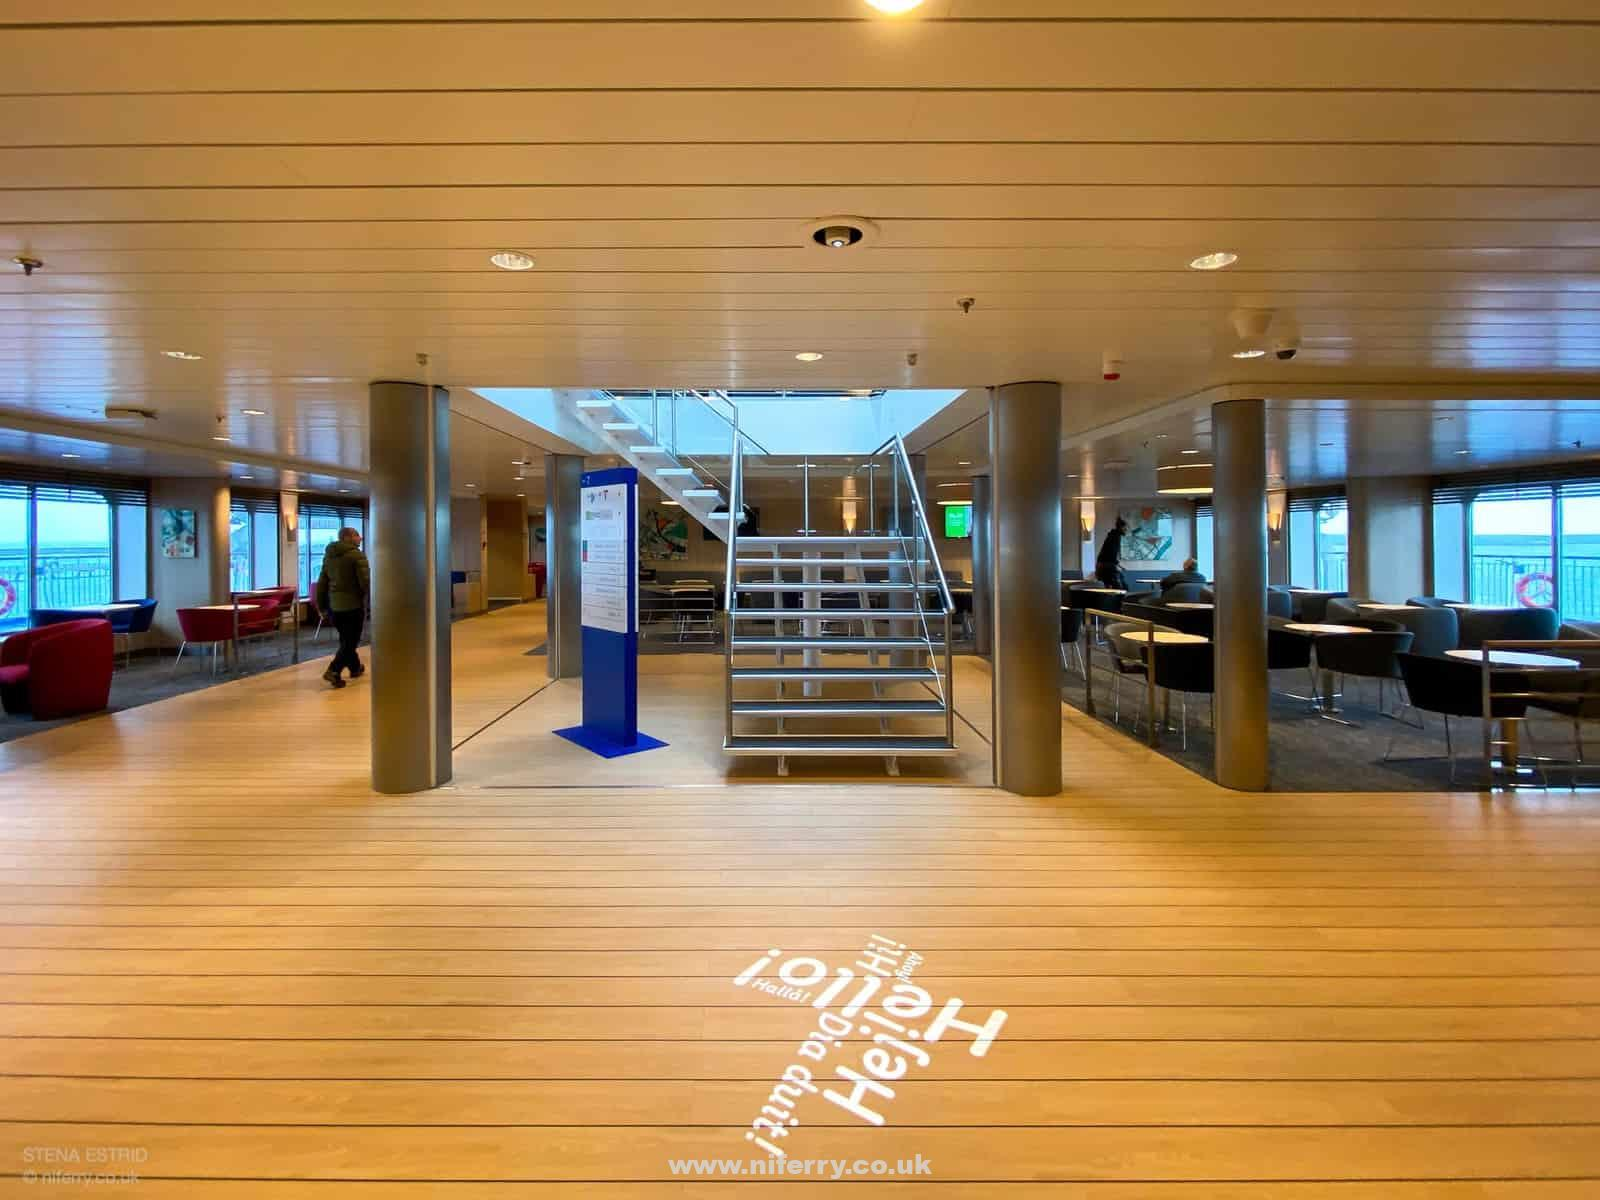 Lobby area in front of Guest Services looking towards the staircase to Deck 8's 'Sky Bar'. Again, a message is projected onto the floor from the deckhead above. © NIferry.co.uk